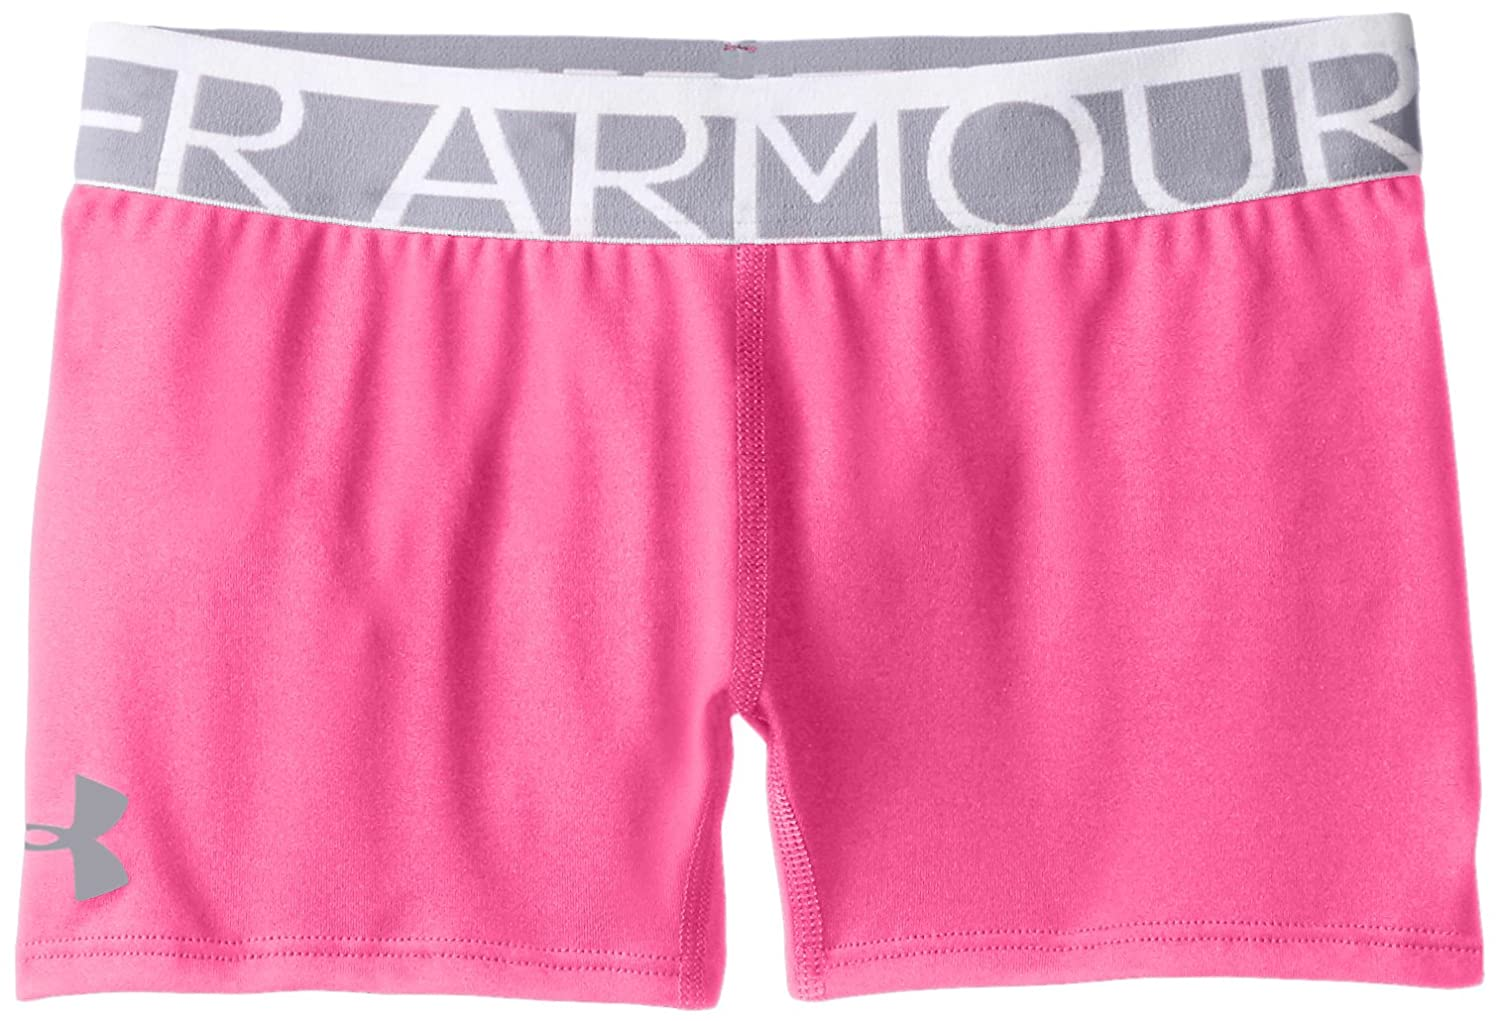 Under Armour Girls' HeatGear Armour 3 Shorty, Rebel Pink/Steel, Youth Medium Under Armour Apparel 1264660